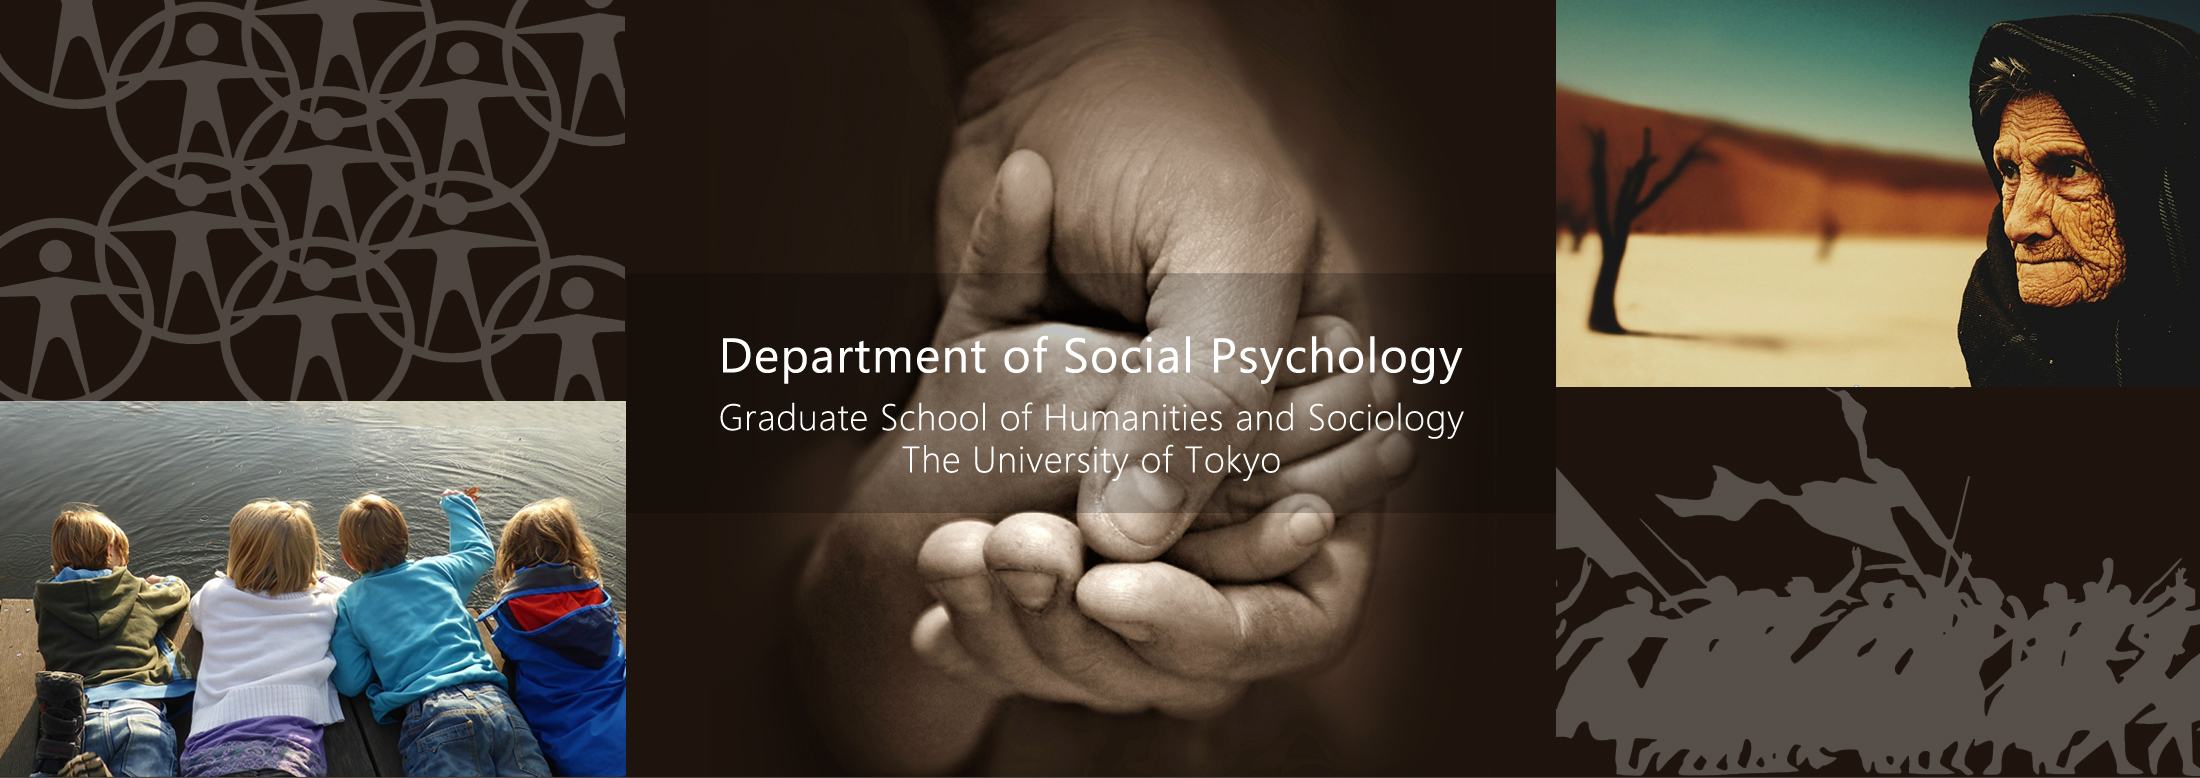 Department of Social Psychology, Graduate School of Humanities and Sociology, The University of Tokyo